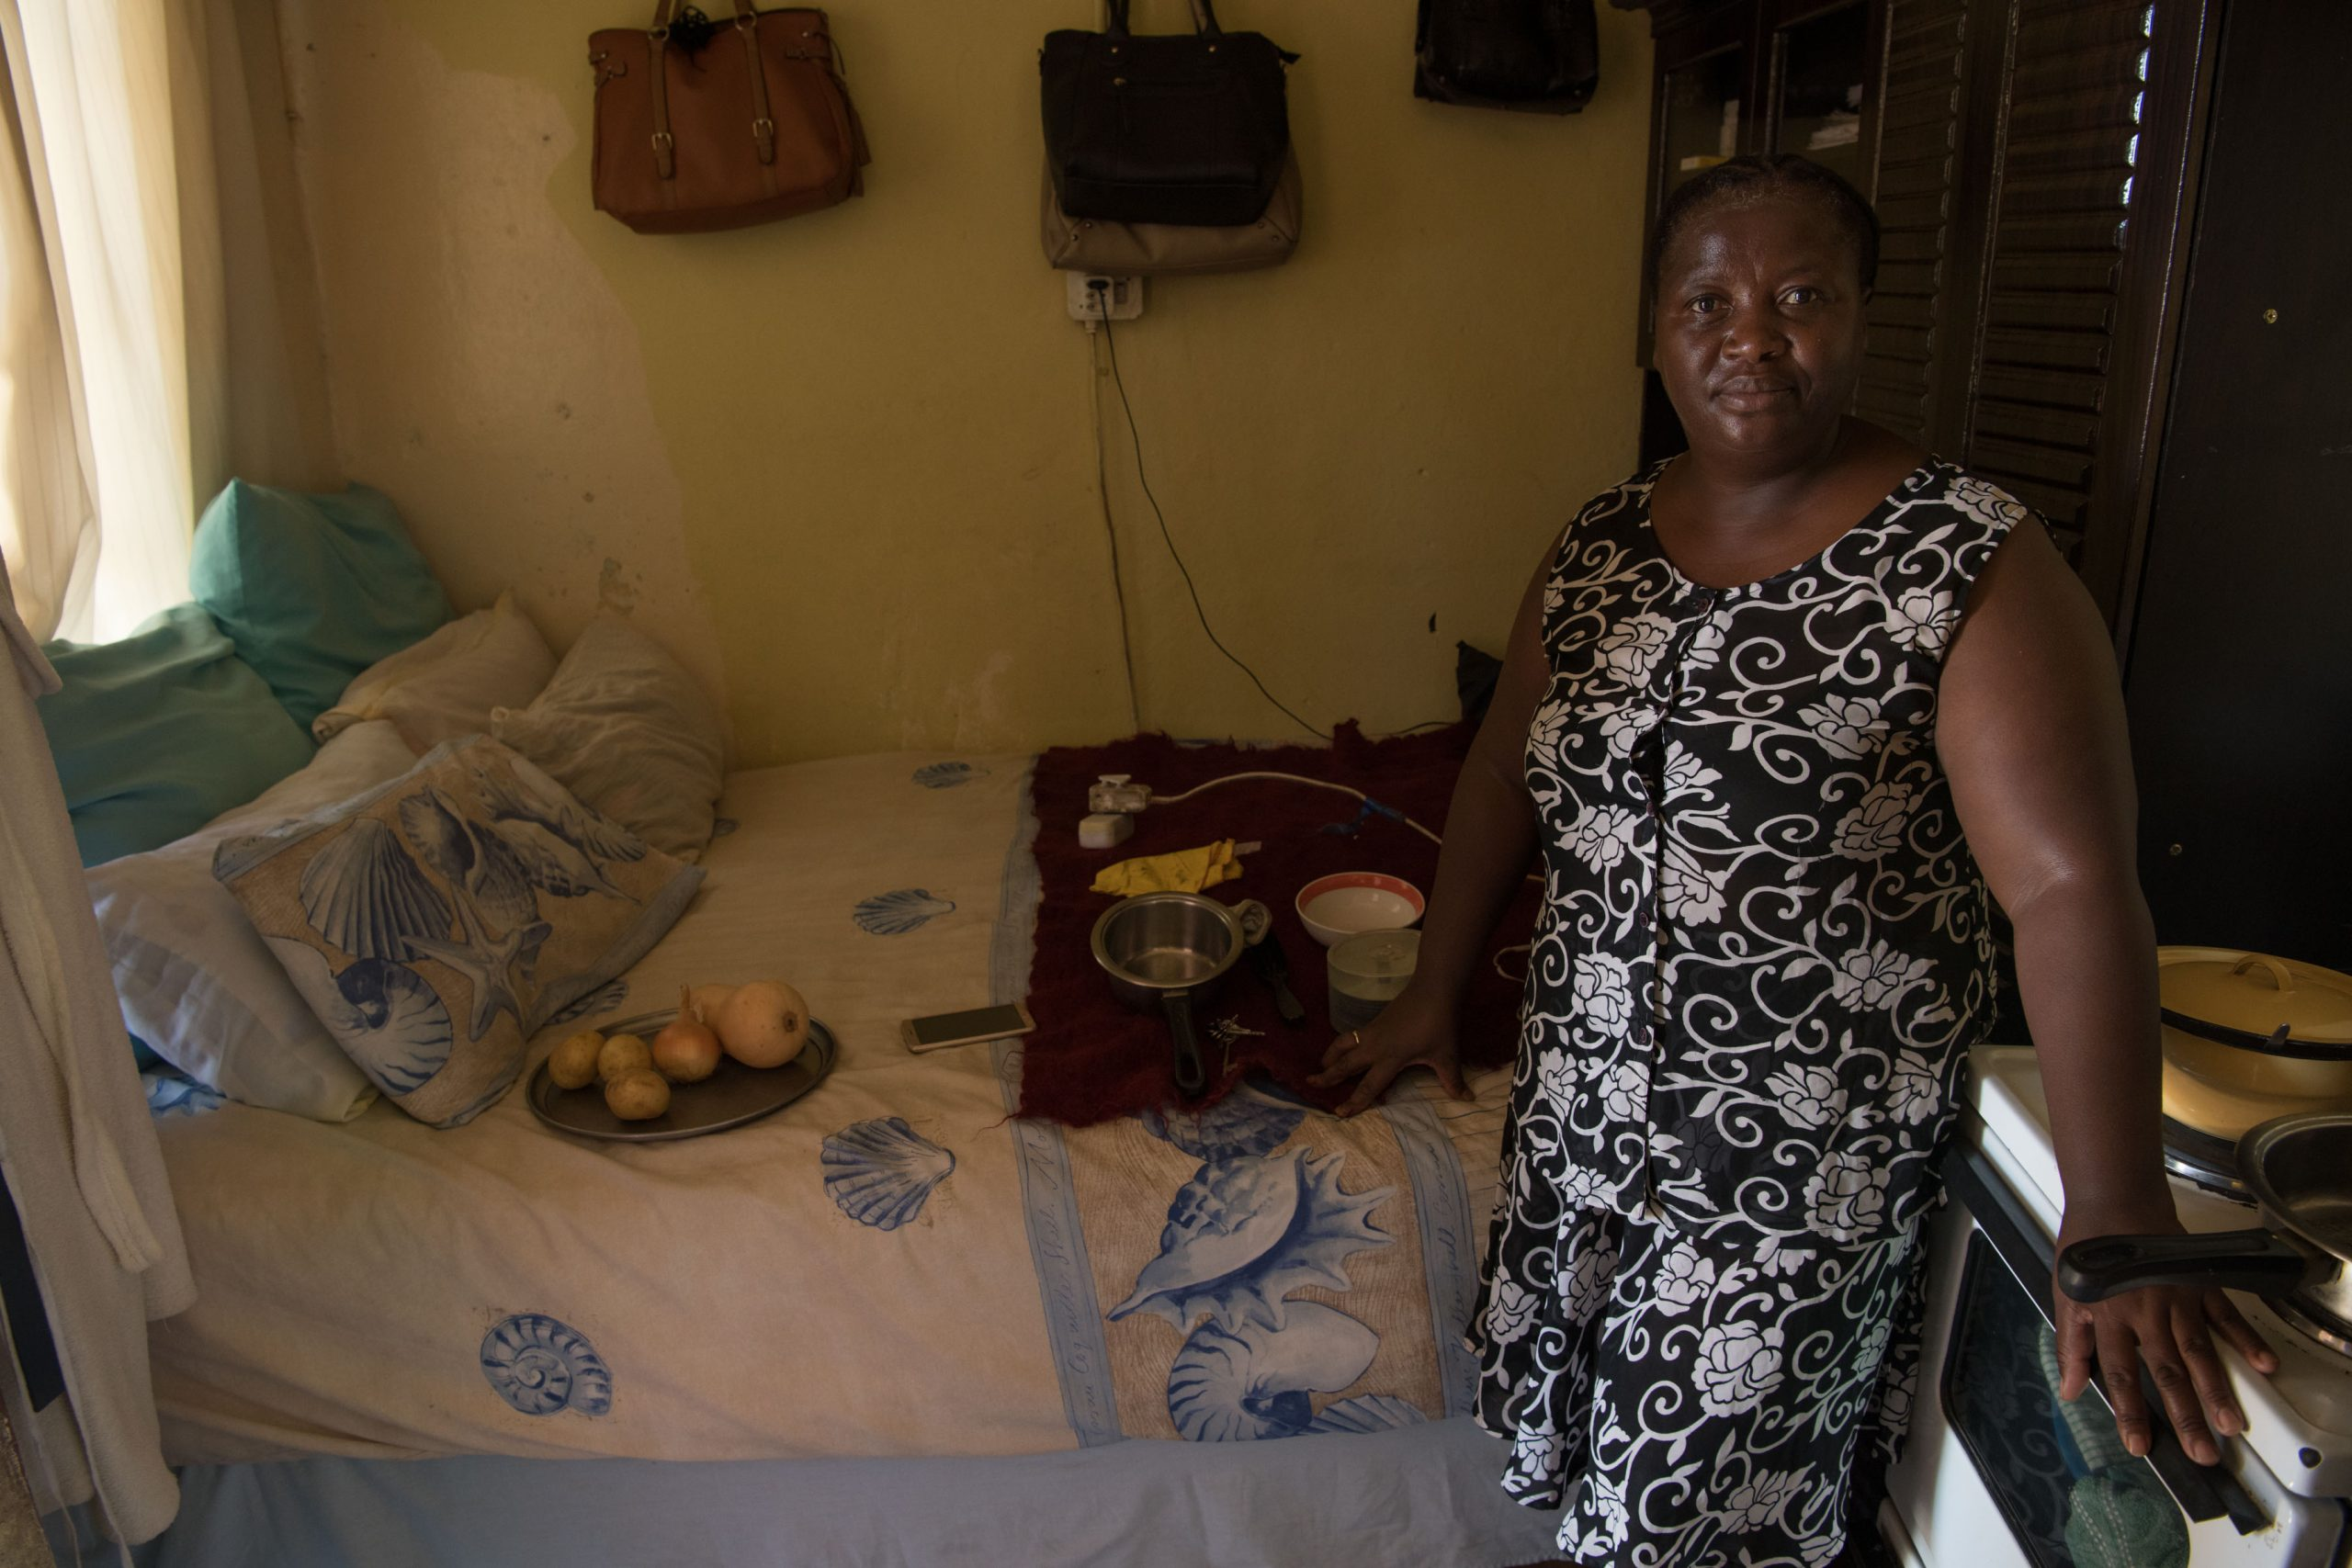 3 February 2020: Phelelwa Pikoli in her room. She has to share a bed with her 23-year-old son.